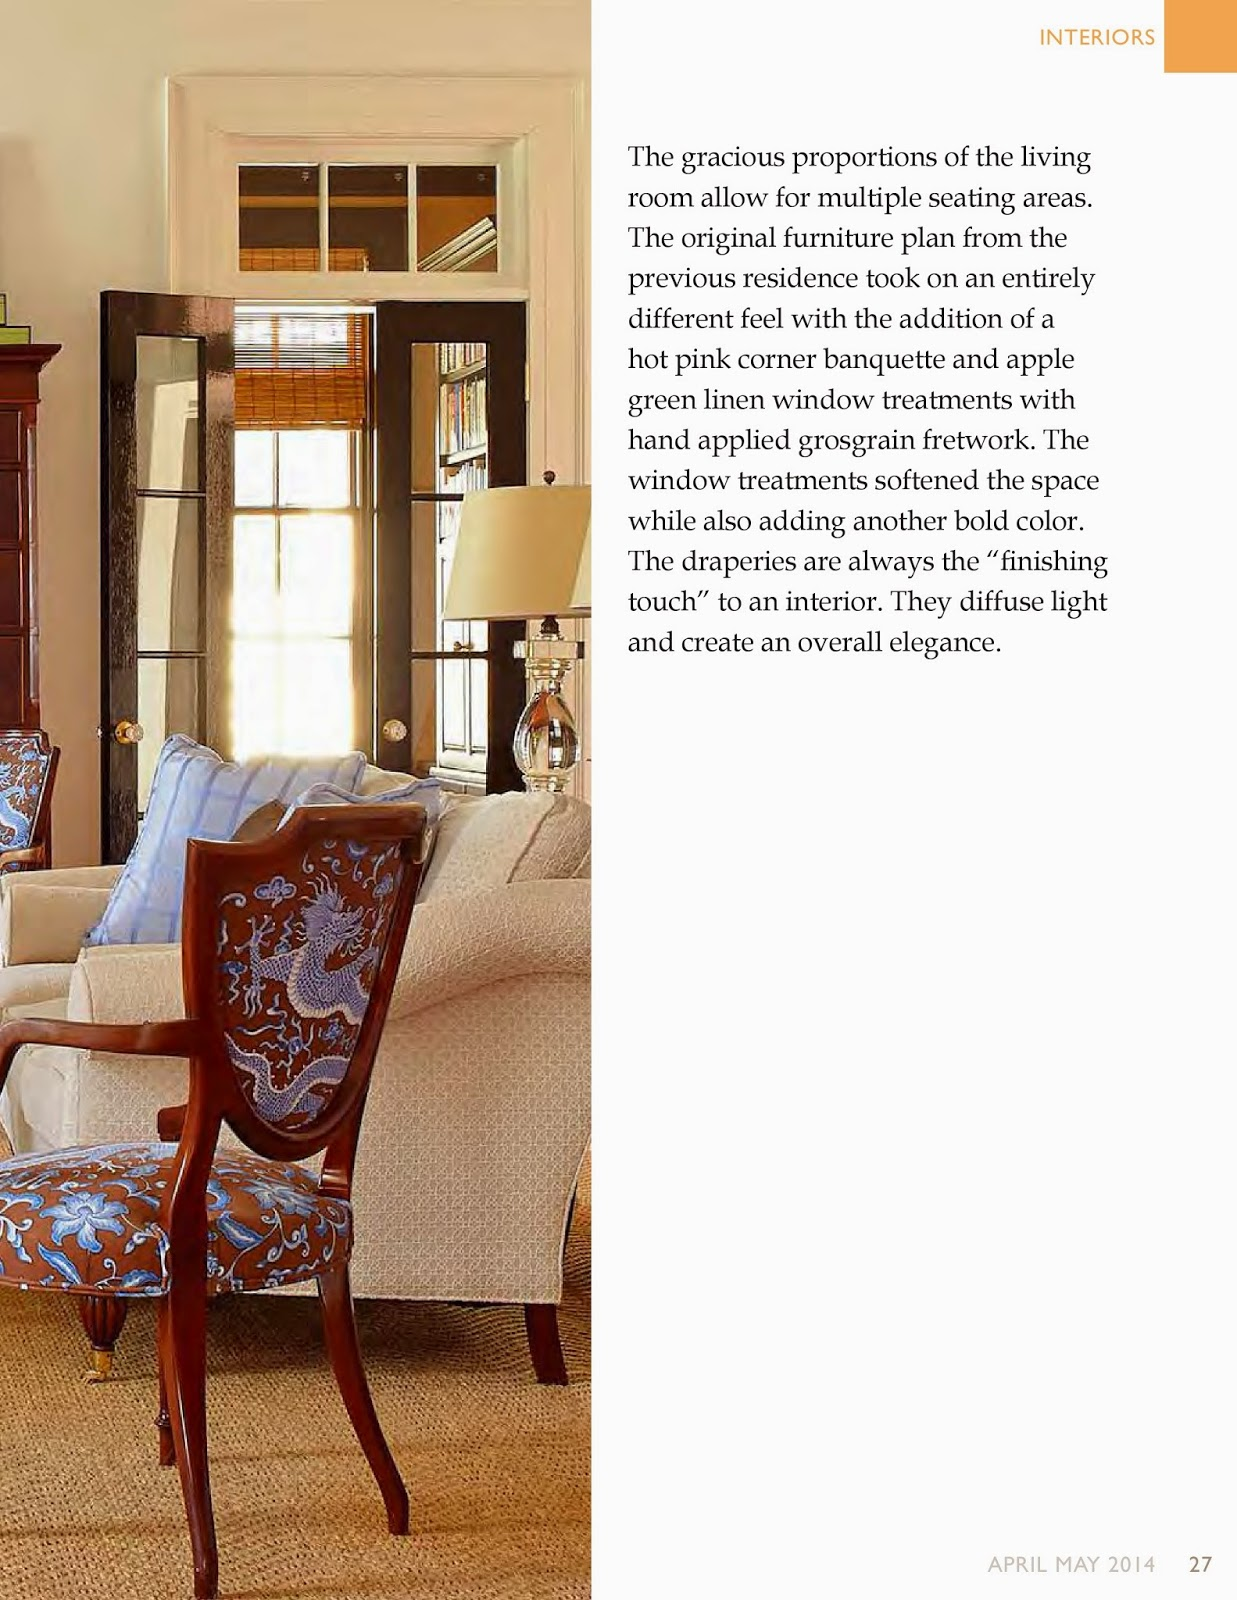 She Touches Whether It Is Her Interior Design Aesthetic Blog Musings Of A Aficionado Fashion Sense And Shopping Style